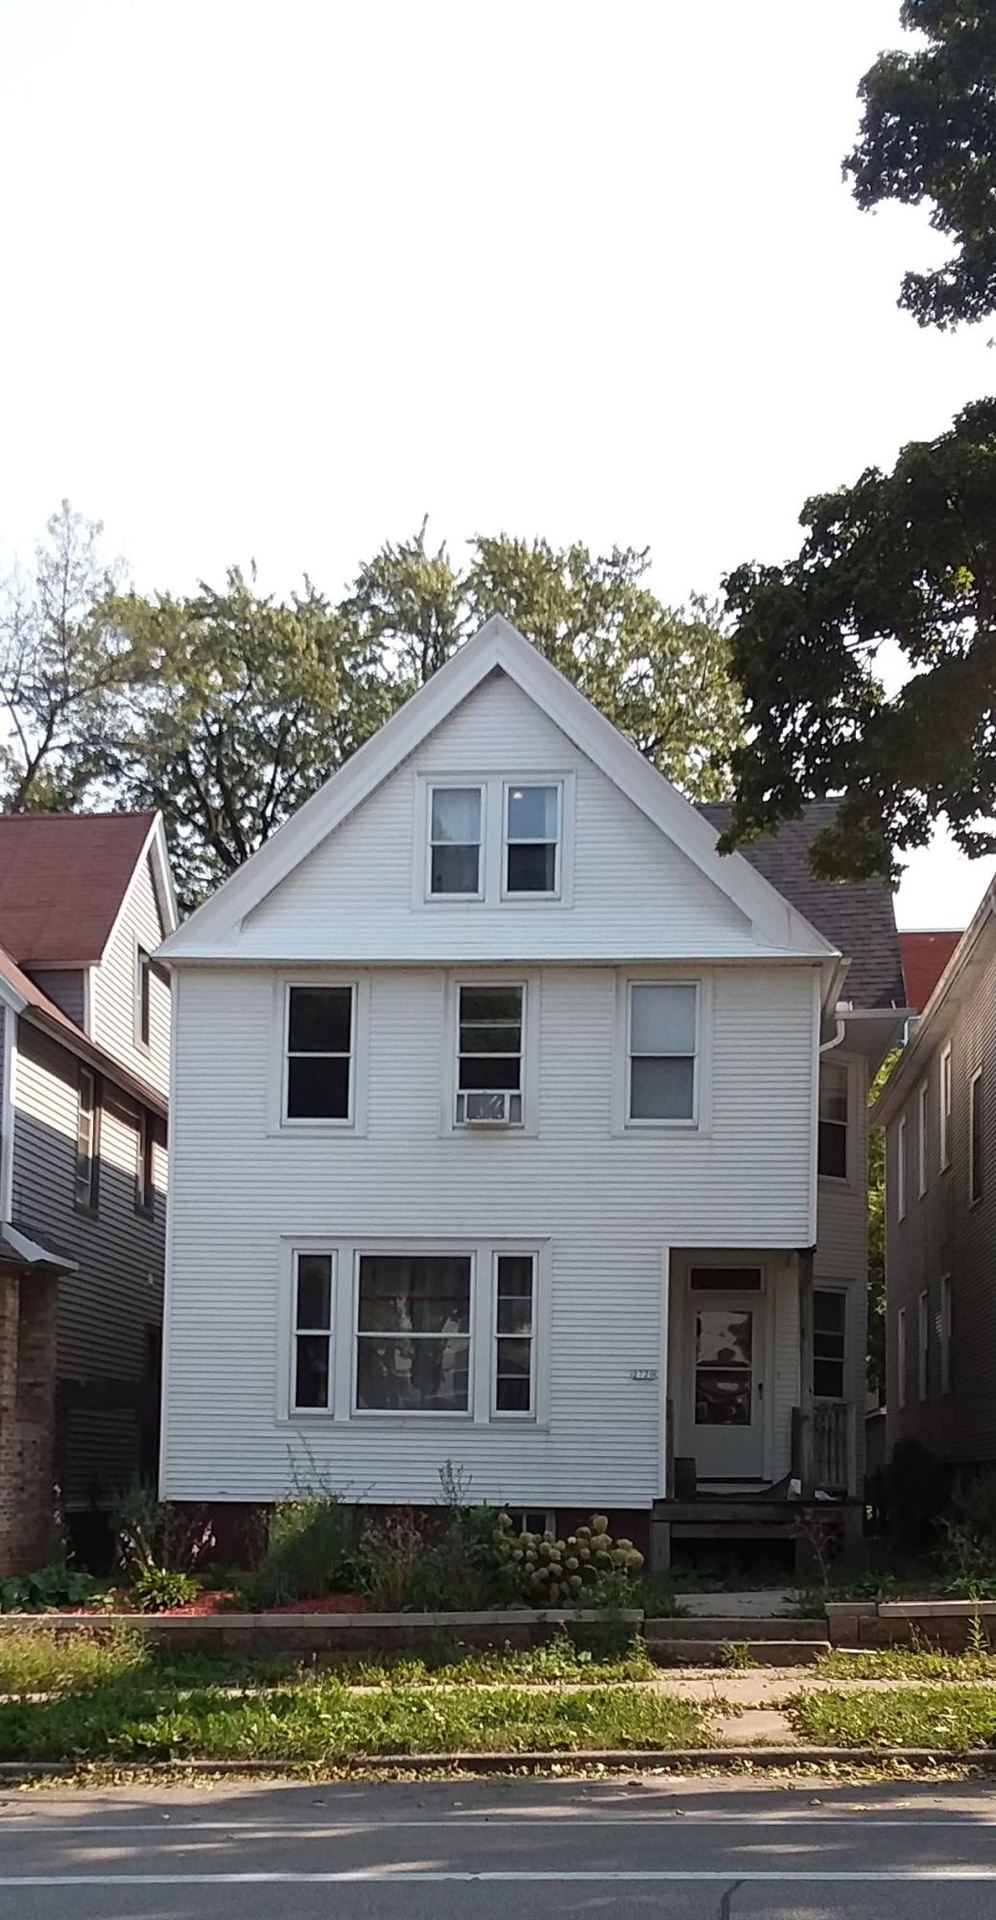 2720 N Oakland Ave #2720 A, Milwaukee, WI 53211 - MLS#: 1712784